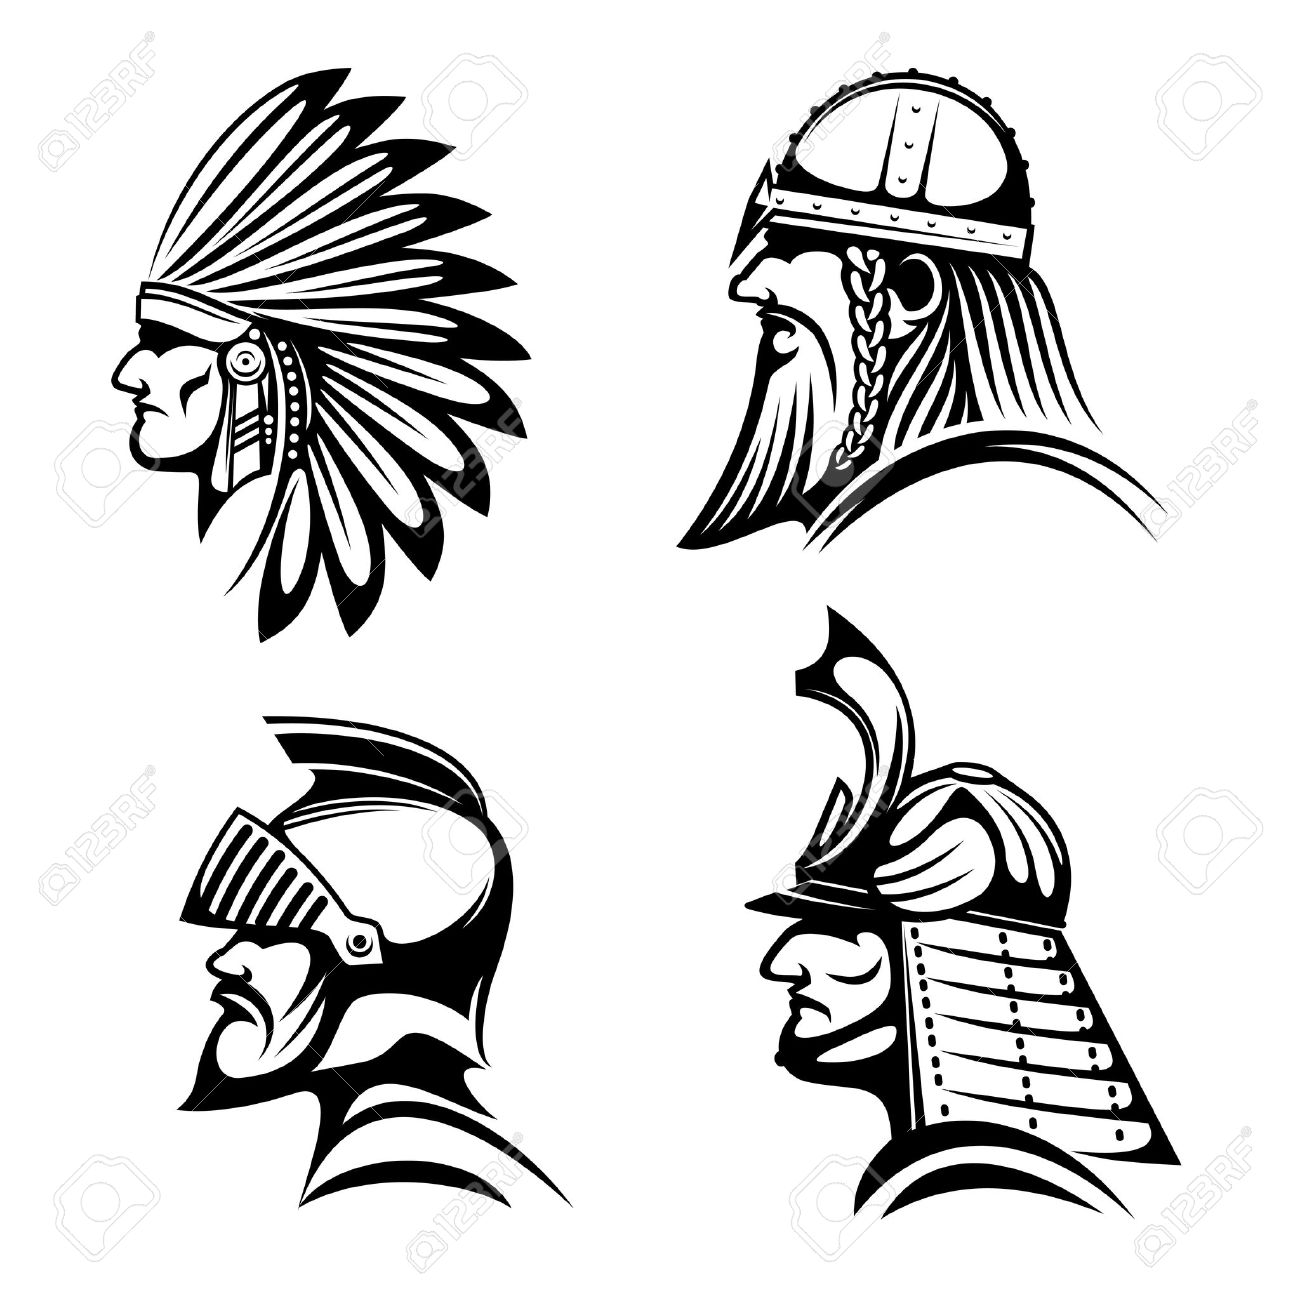 1300x1300 Ancient Warriors In Helmets Icons With Profiles Of Medieval Knight